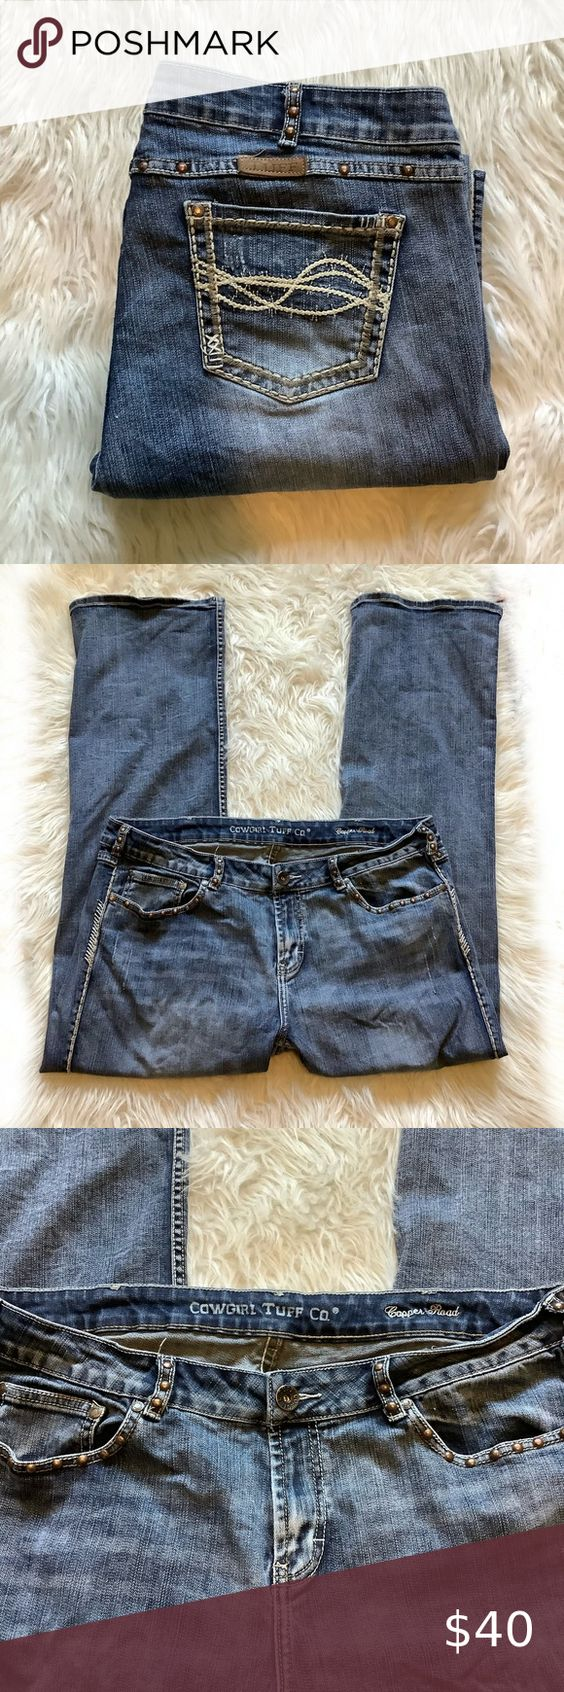 Cowgirl Tuff Copper Road Jeans Size 36 Cowgirl Tuff Jeans Cowgirl Tuff Women Jeans